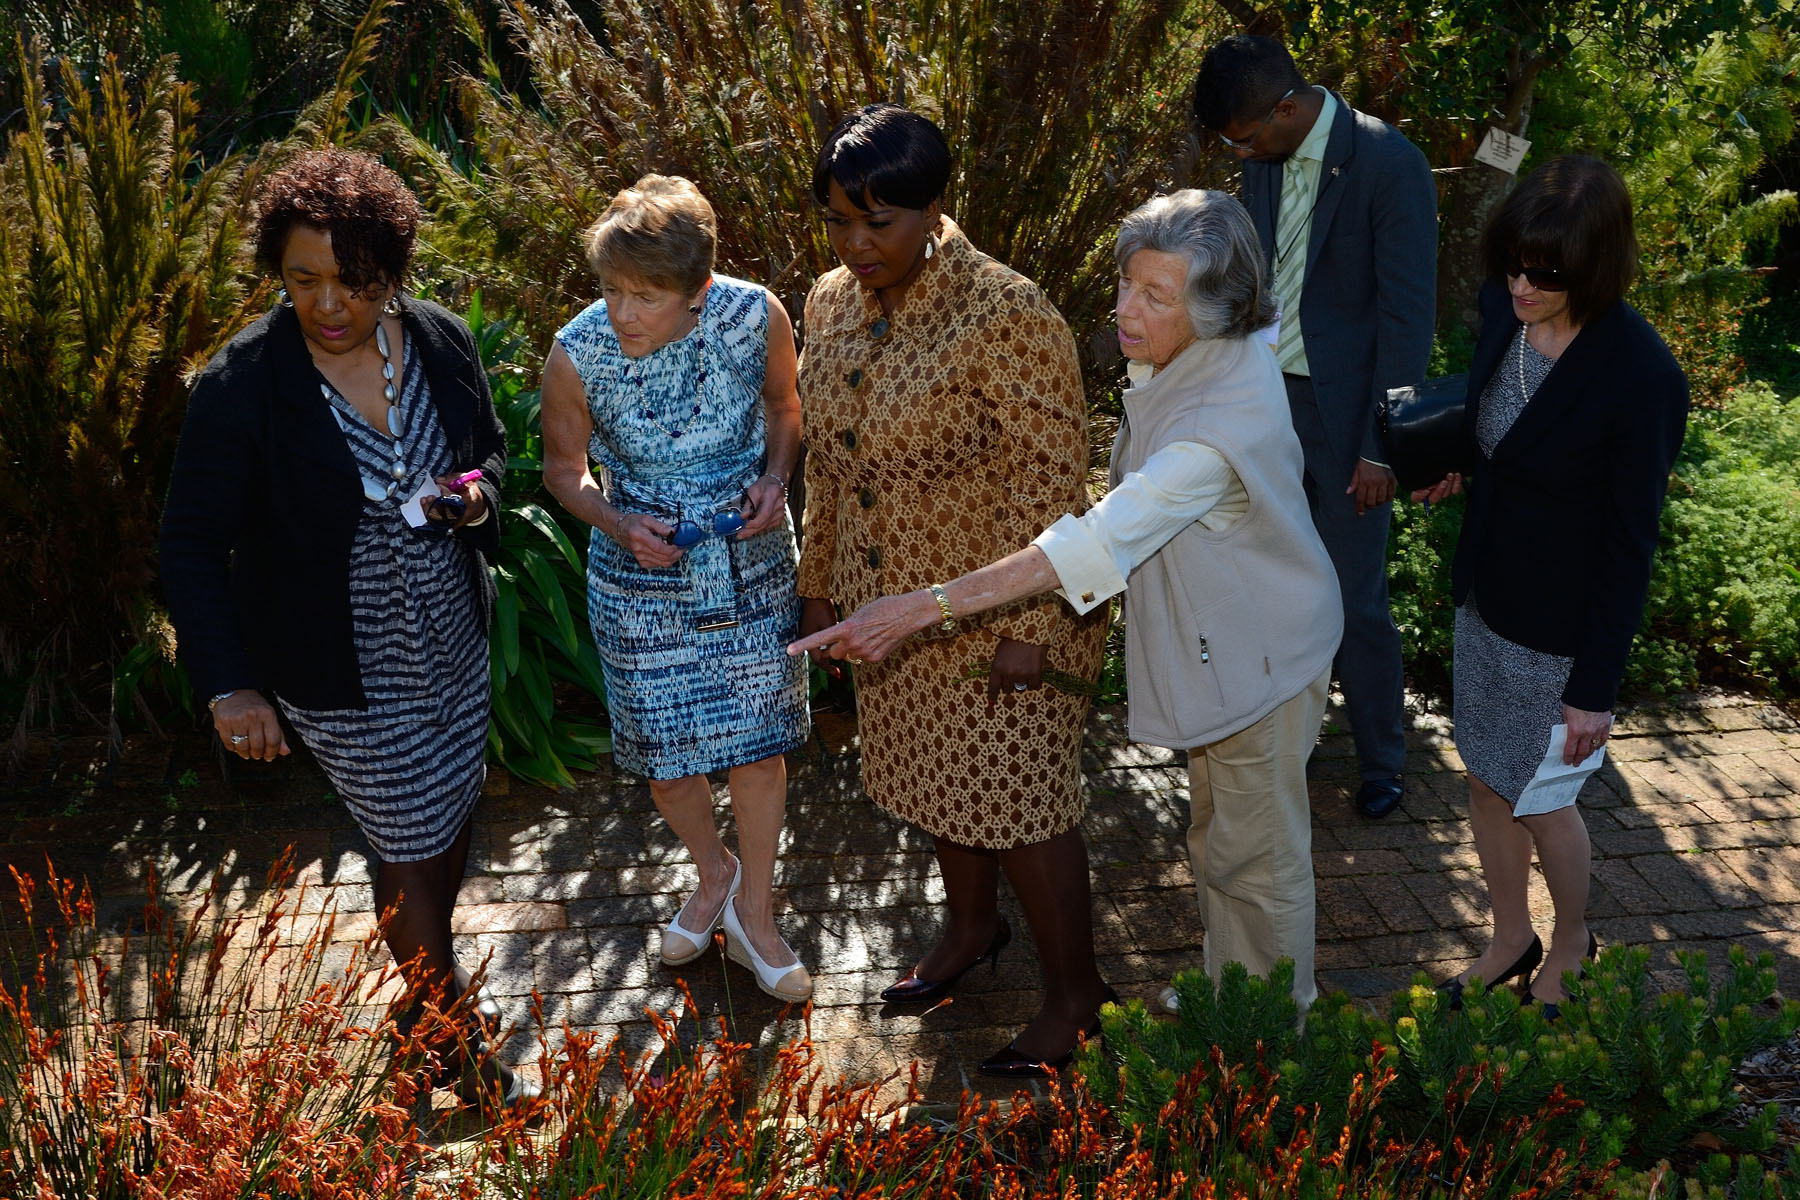 During Her Excellency's tour, she heard about the work that Canada has supported through the South African Department of Treasury and the National Biodiversity Institute, in such areas as leadership development and change management.